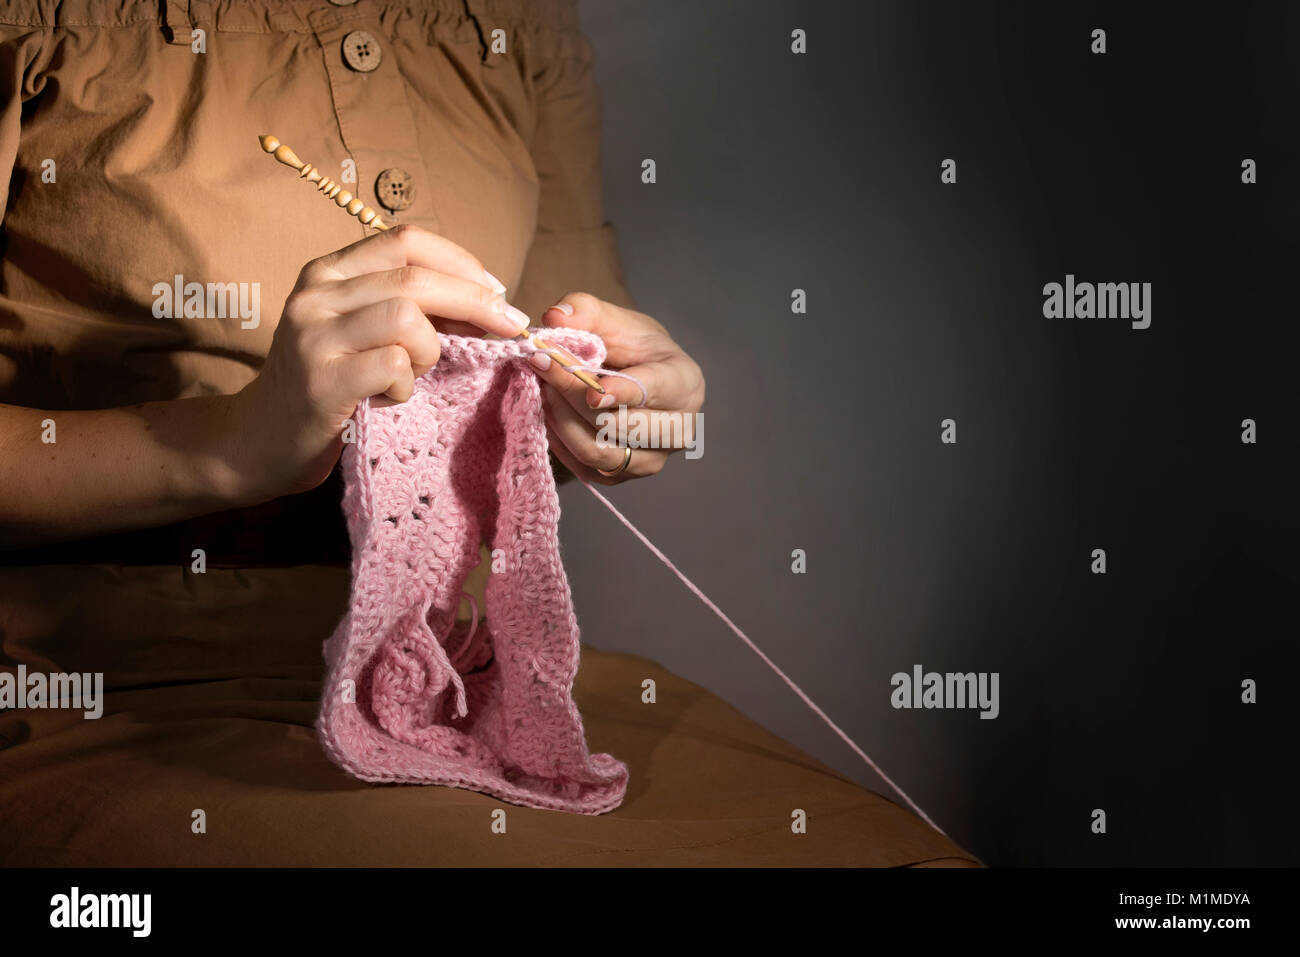 Creating of handcraft clothing. - Stock Image